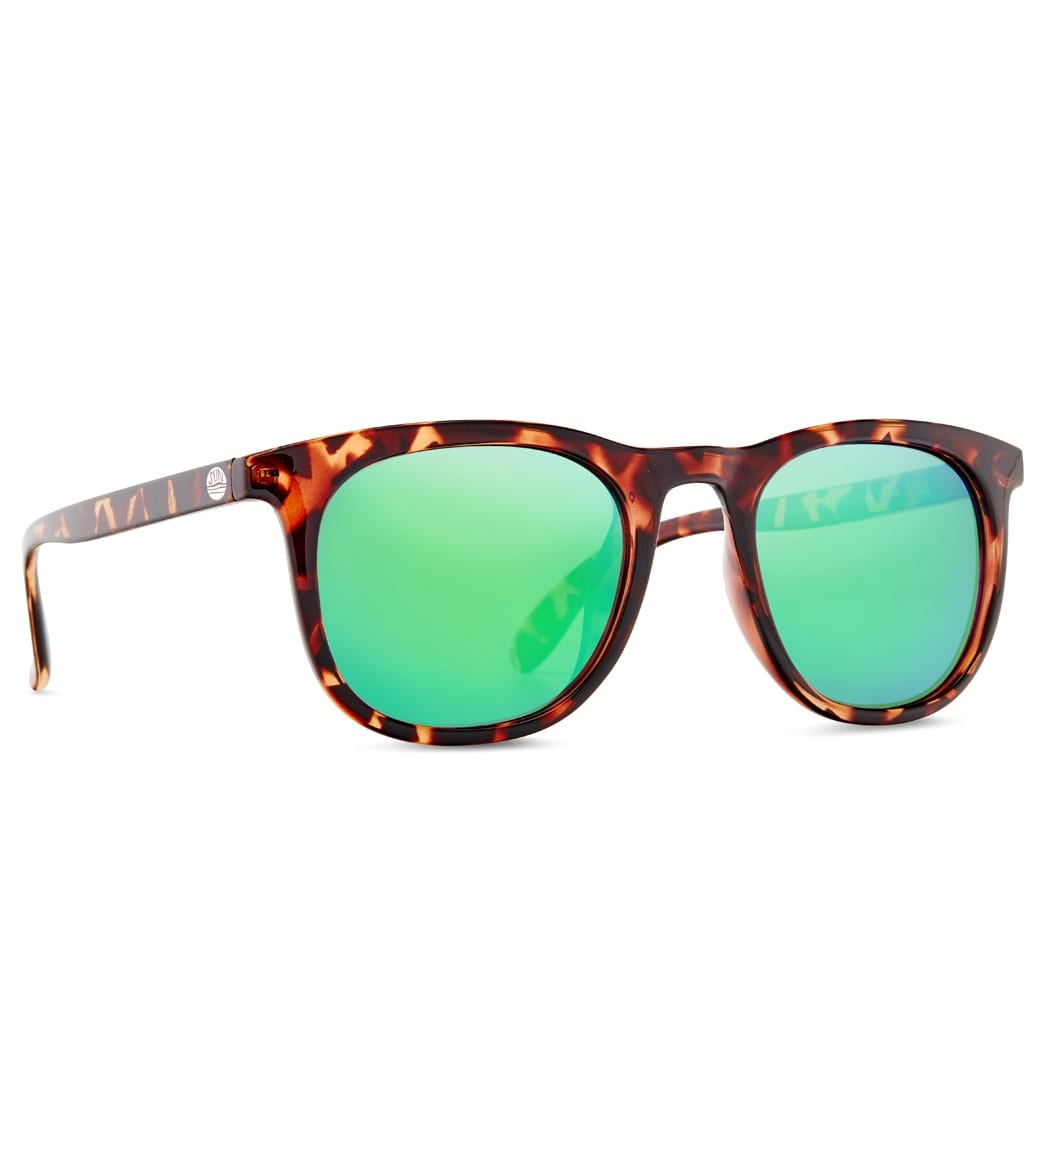 polarized eyewear  Sunski Seacliff Polarized Sunglasses at SwimOutlet.com - Free Shipping